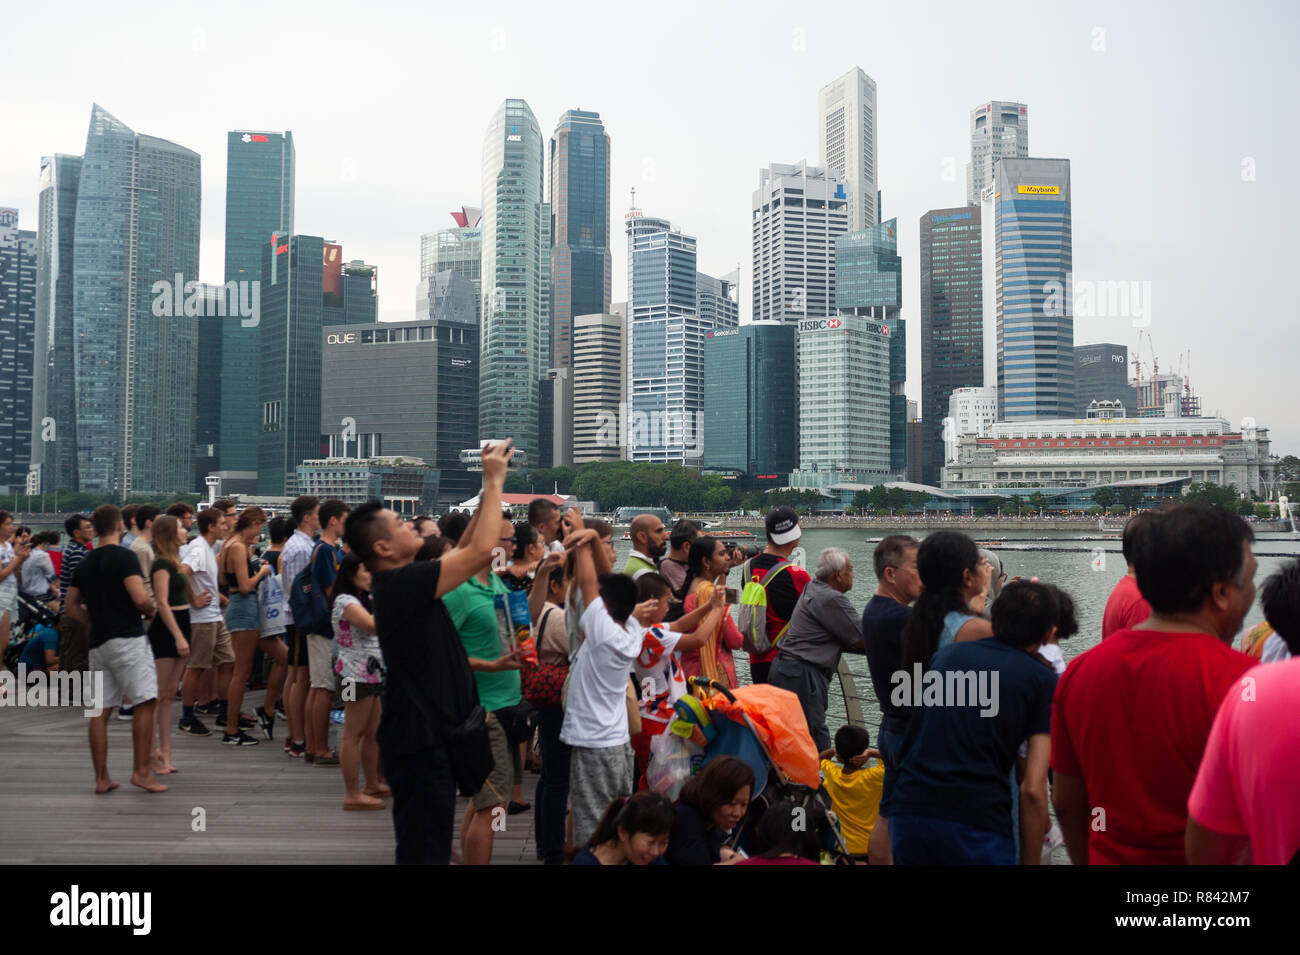 04.08.2018, Singapore, Republic of Singapore, Asia -Visitors follow an aerial manoeuvre of the Singapore Airforce over Marina Bay. - Stock Image